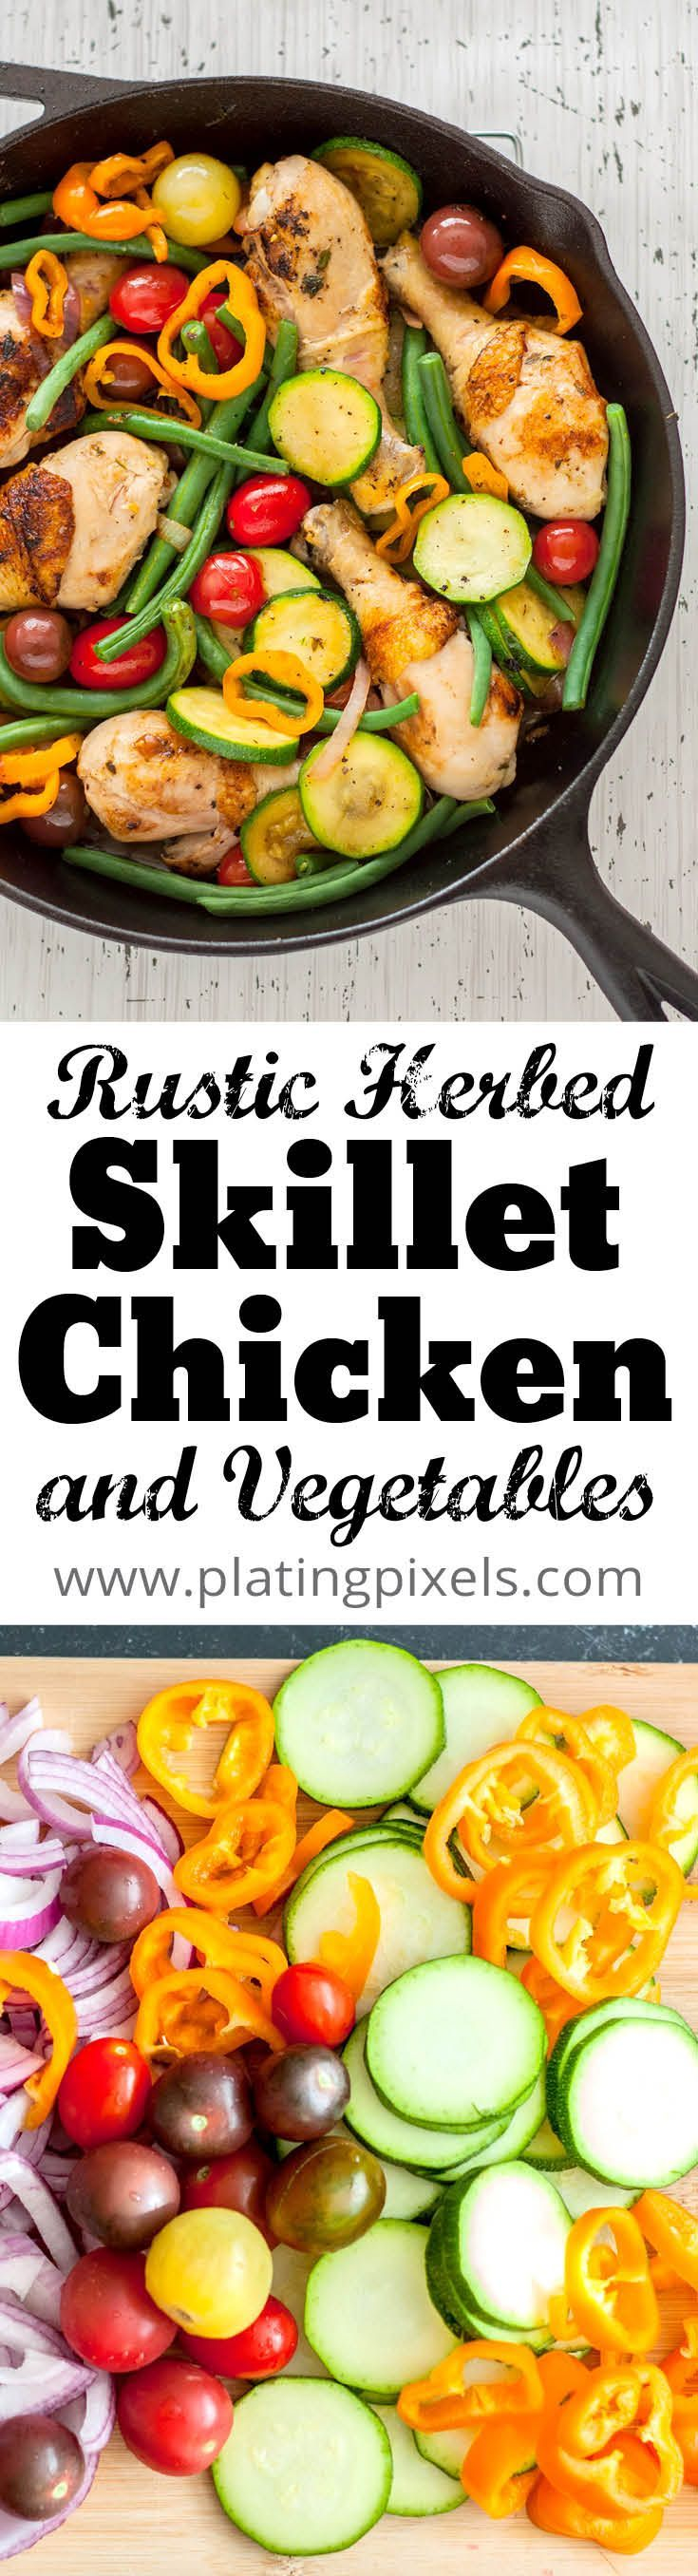 Rustic skillet chicken and vegetables by Plating Pixels. Flavorful, crisp chicken pairs lovingly with fresh vegetables and a rich broth based sauce in this gluten-free skillet dish. - www.platingpixels.com